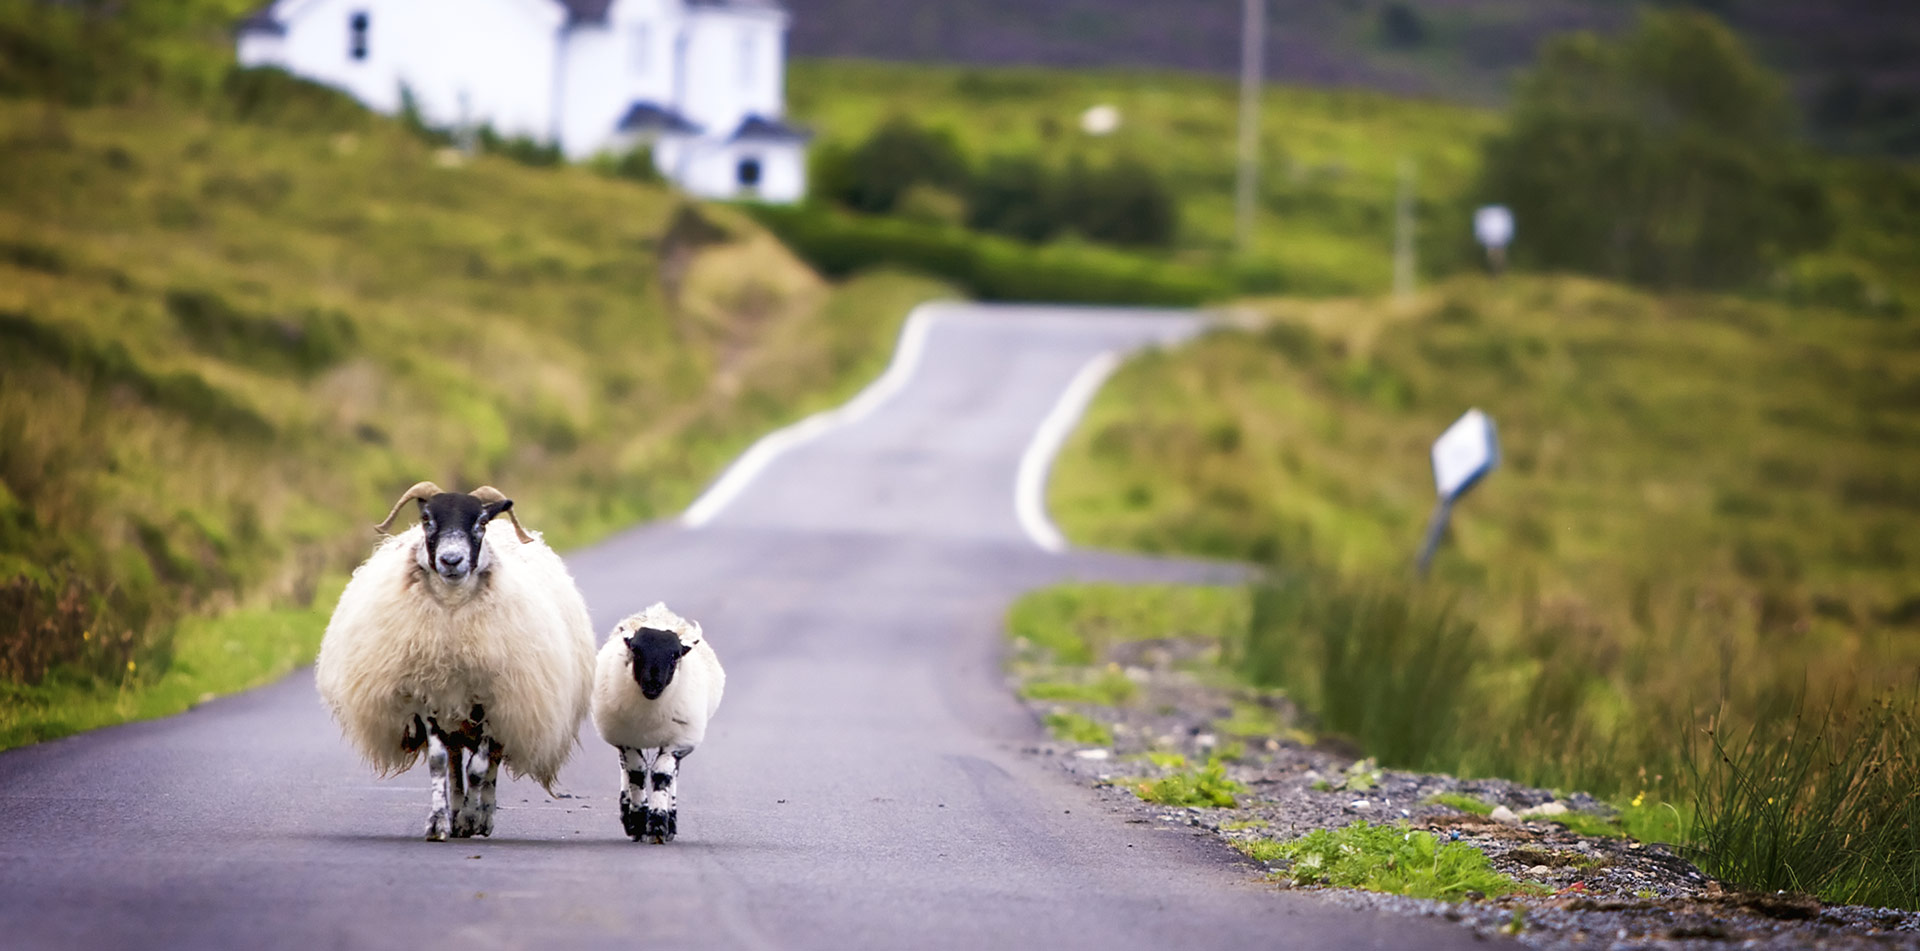 Europe United Kingdom Scotland two sheep walking on rural road in remote scenic countryside - luxury vacation destinations